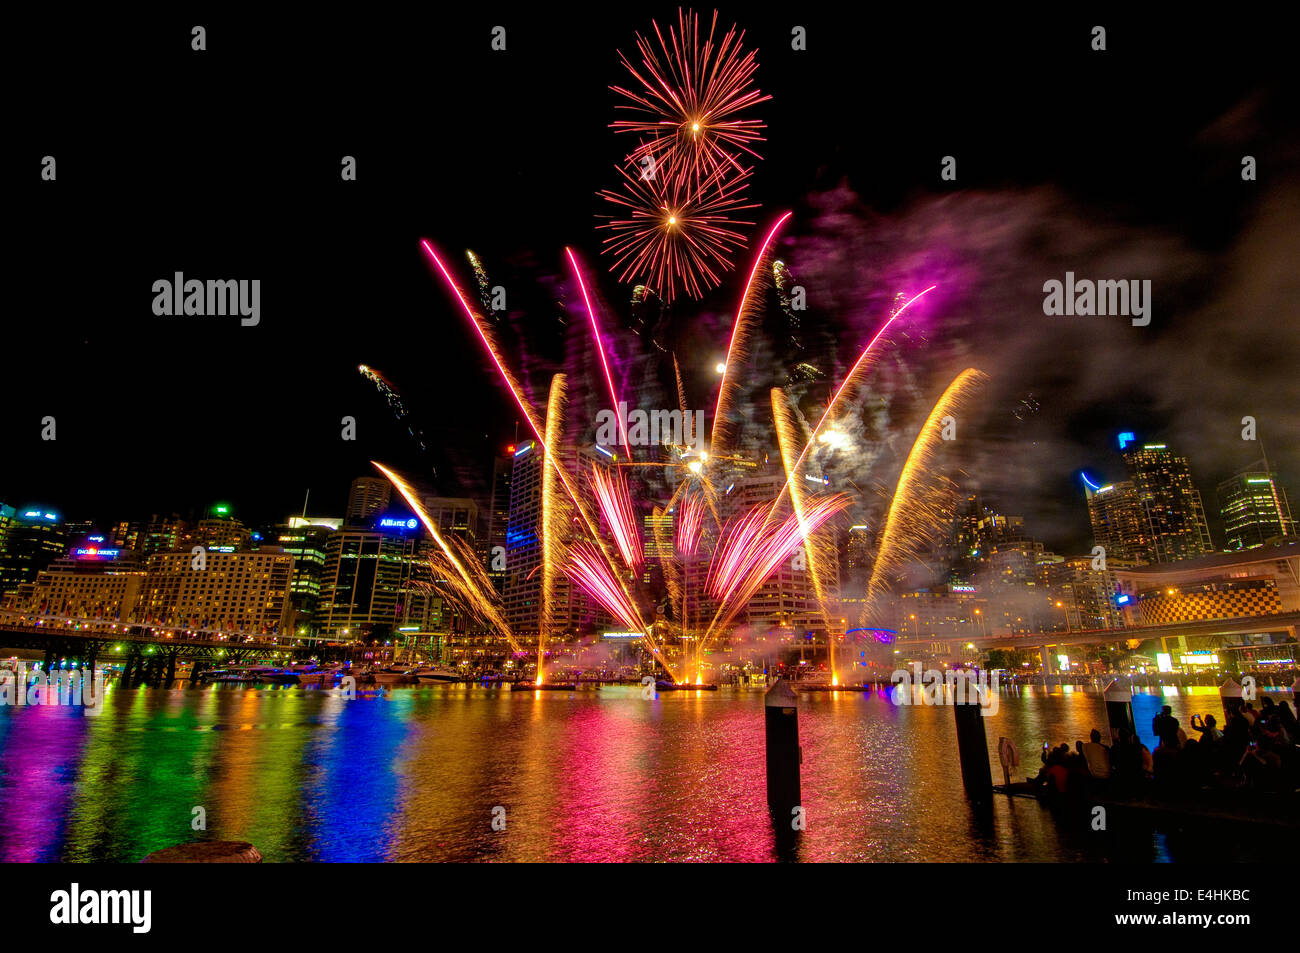 Fireworks, Darling Harbour, Sydney, New South Wales - Stock Image